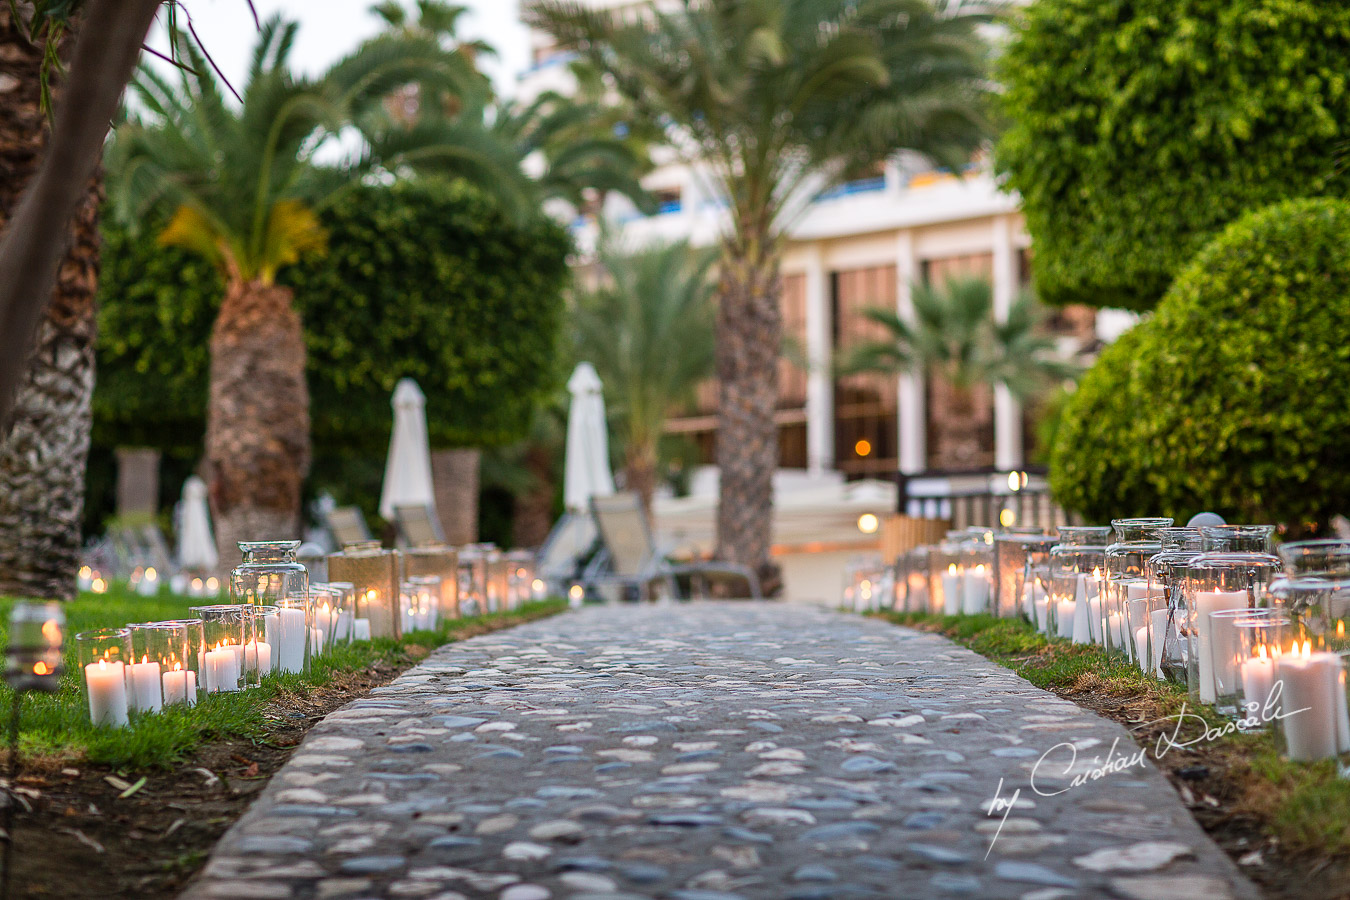 Lovely wedding details captured at an elegant and romantic wedding at Elias Beach Hotel by Cristian Dascalu.